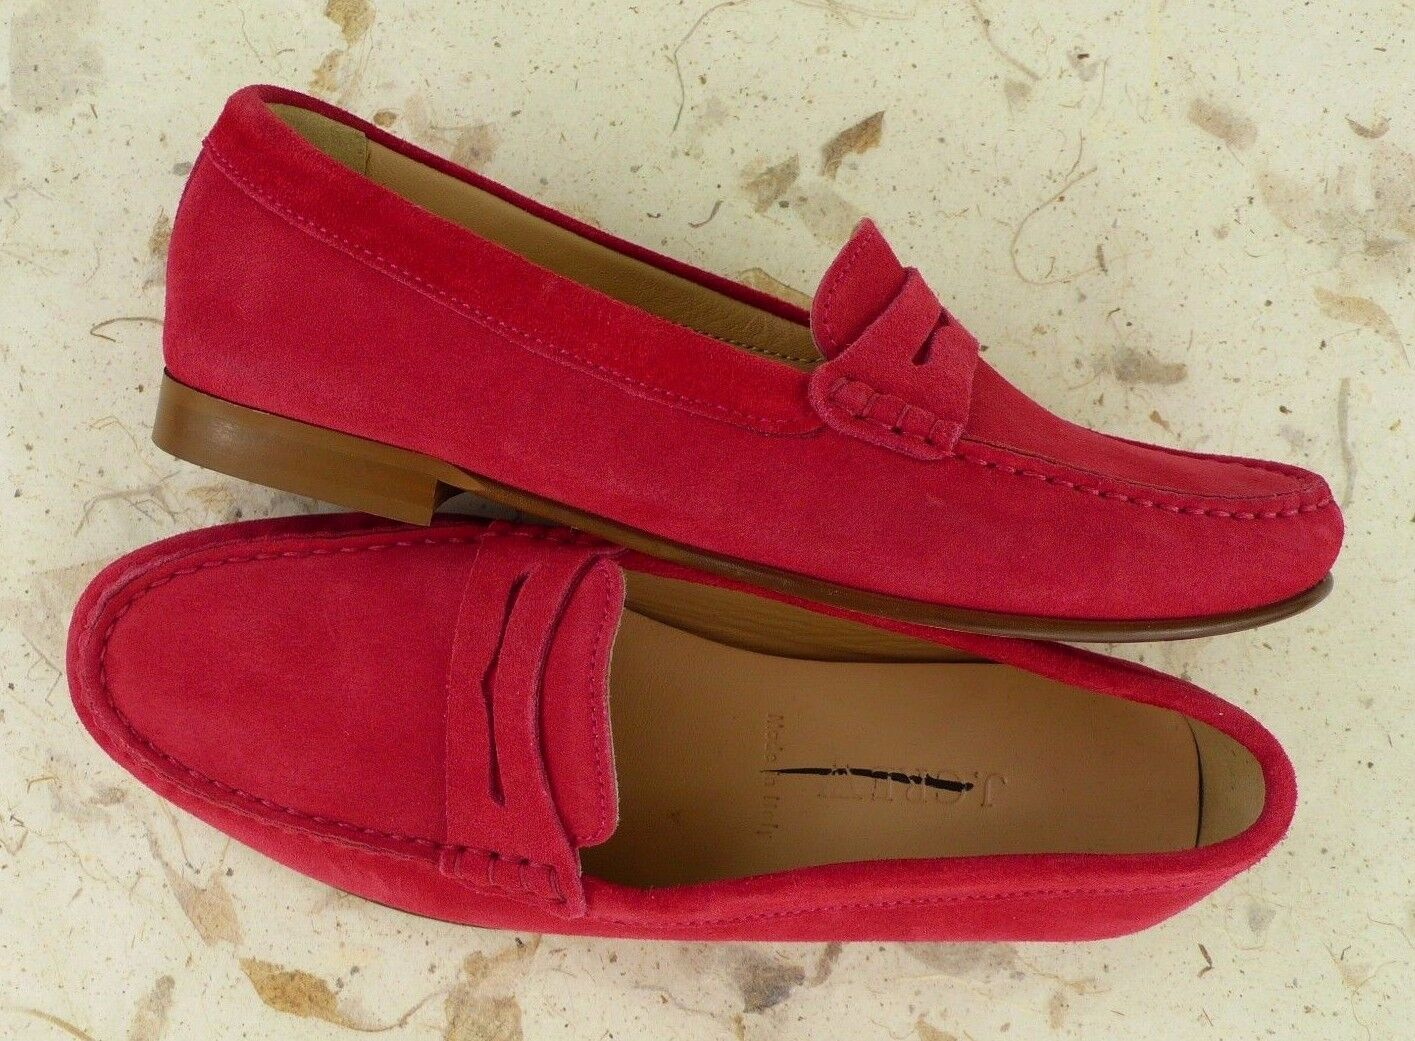 NEW J. CREW Retail  178 Women's JAMES SUEDE PENNY LOAFERS RED Size 6.5 ITALY